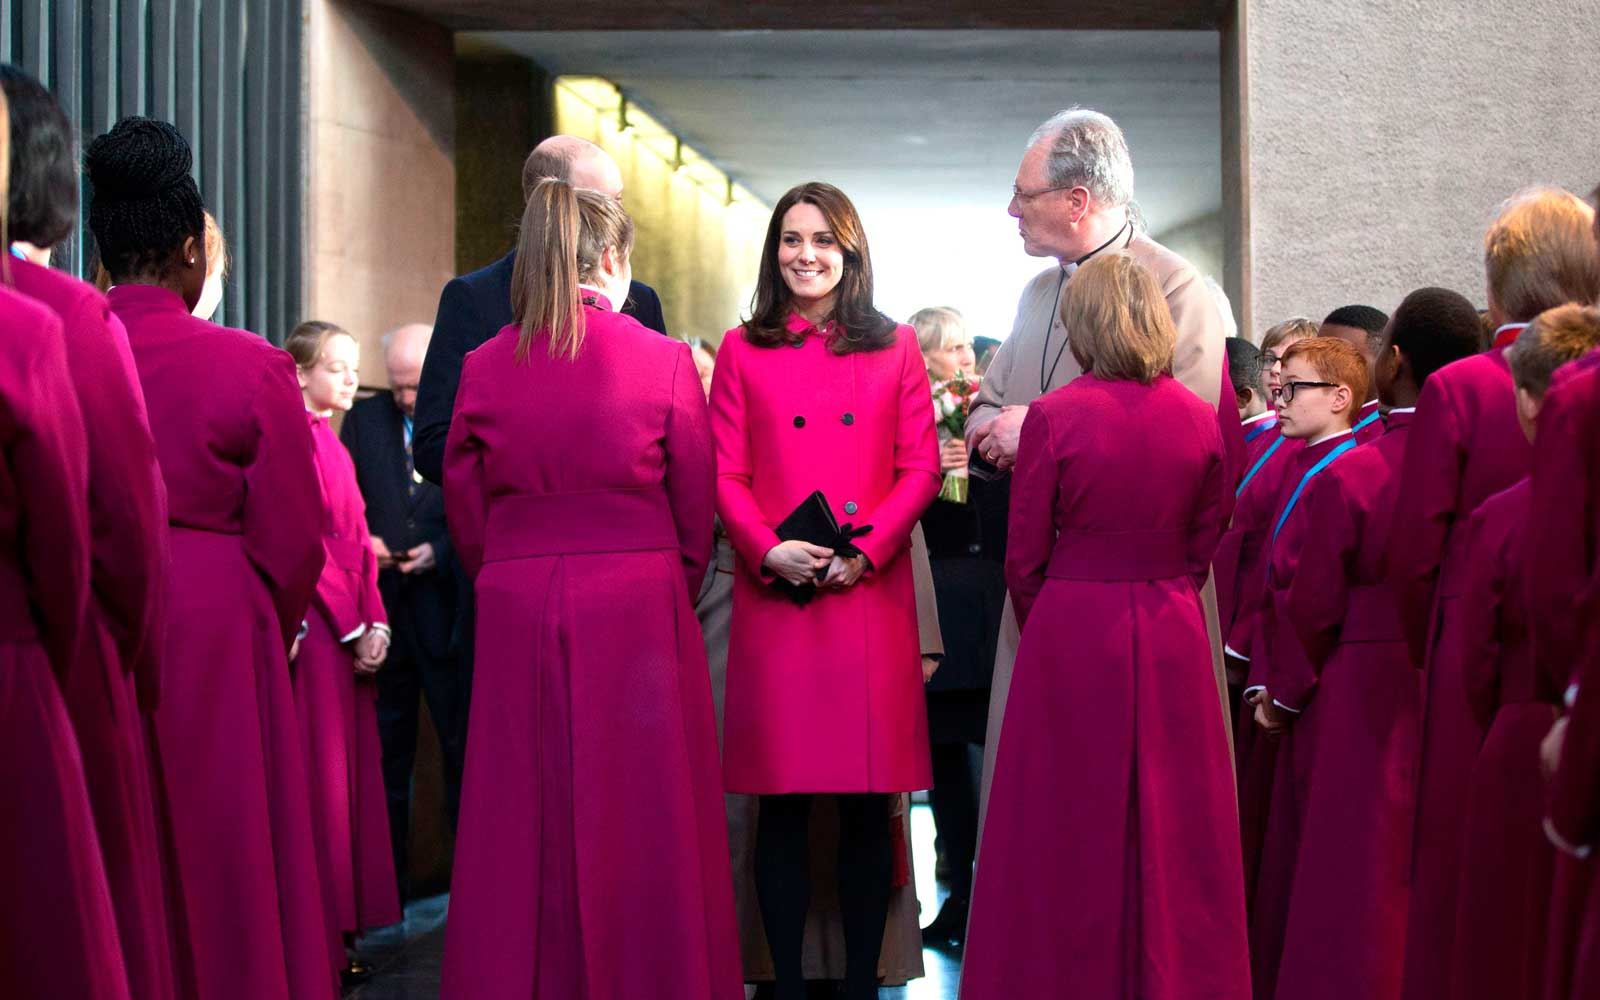 Catherine, Duchess of Cambridge meet choristers after taking part in the Coventry Litany of Reconciliation